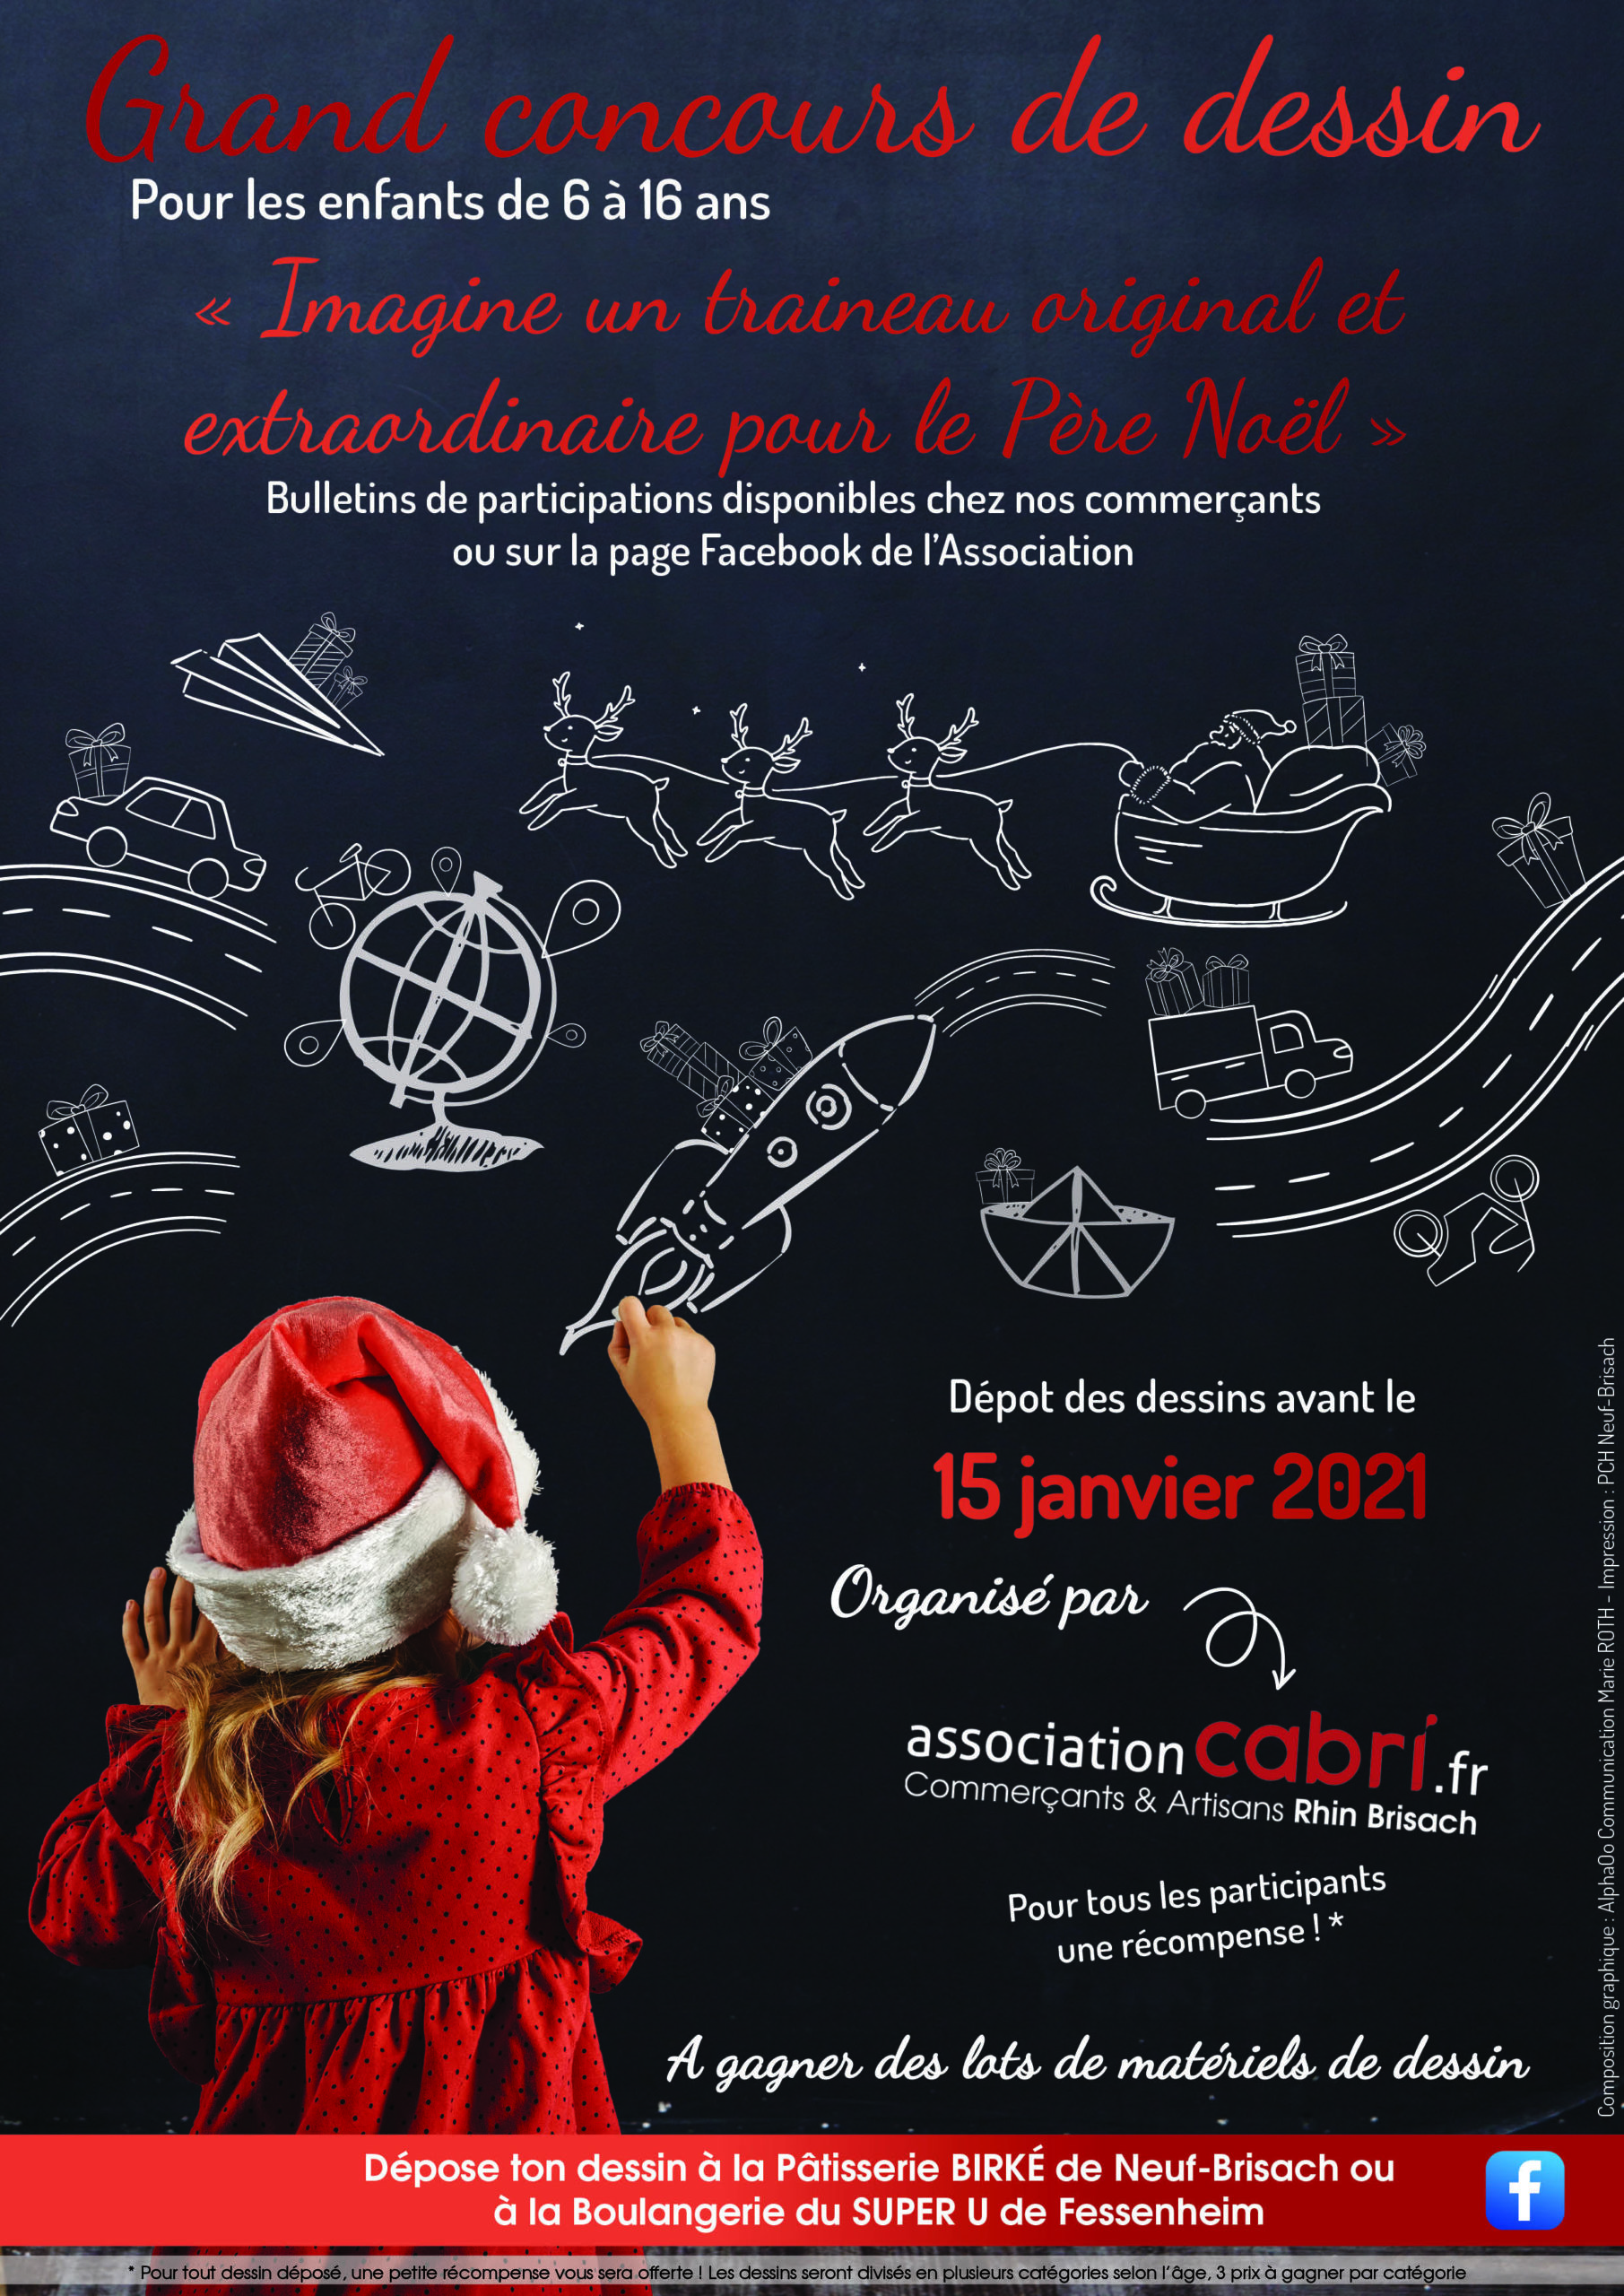 https://associationcabri.fr/wp-content/uploads/2020/12/affiche-concours-de-dessin-cabri-noel-2020-scaled.jpg